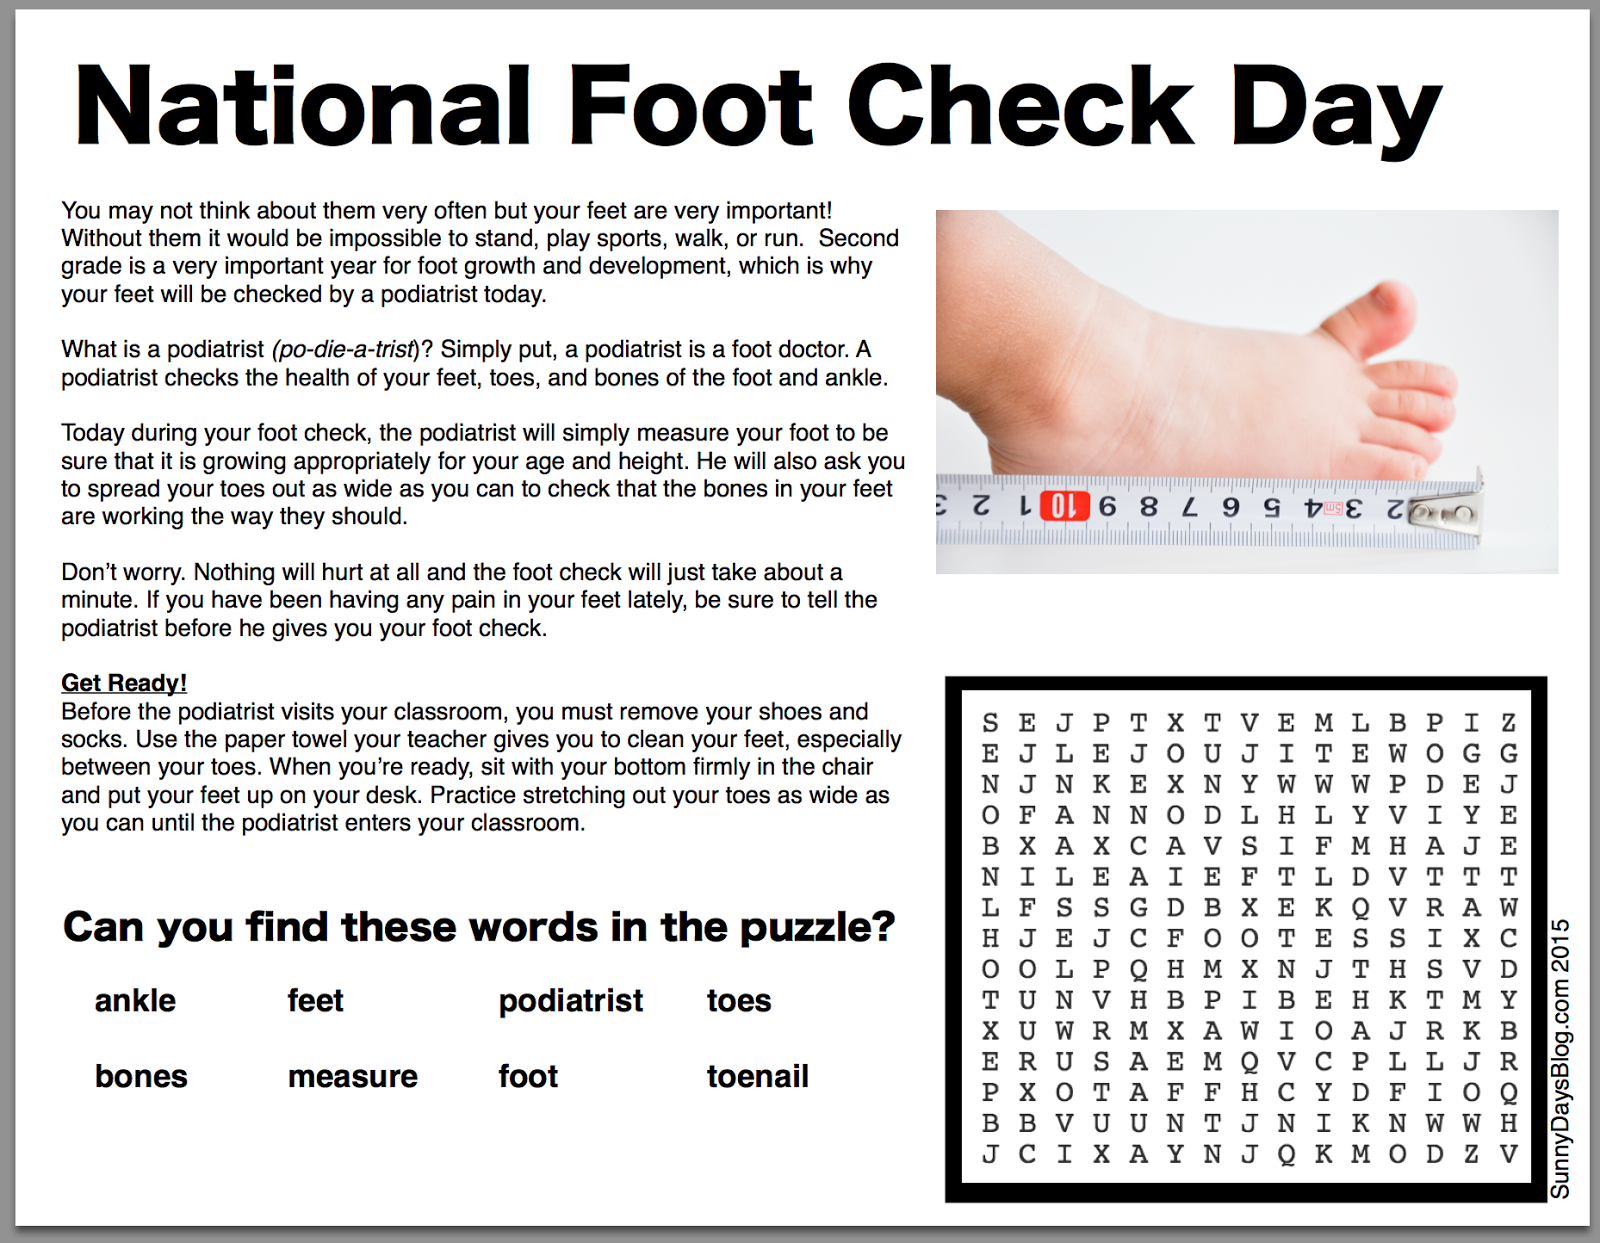 national foot check day epic april fools idea sunny days in